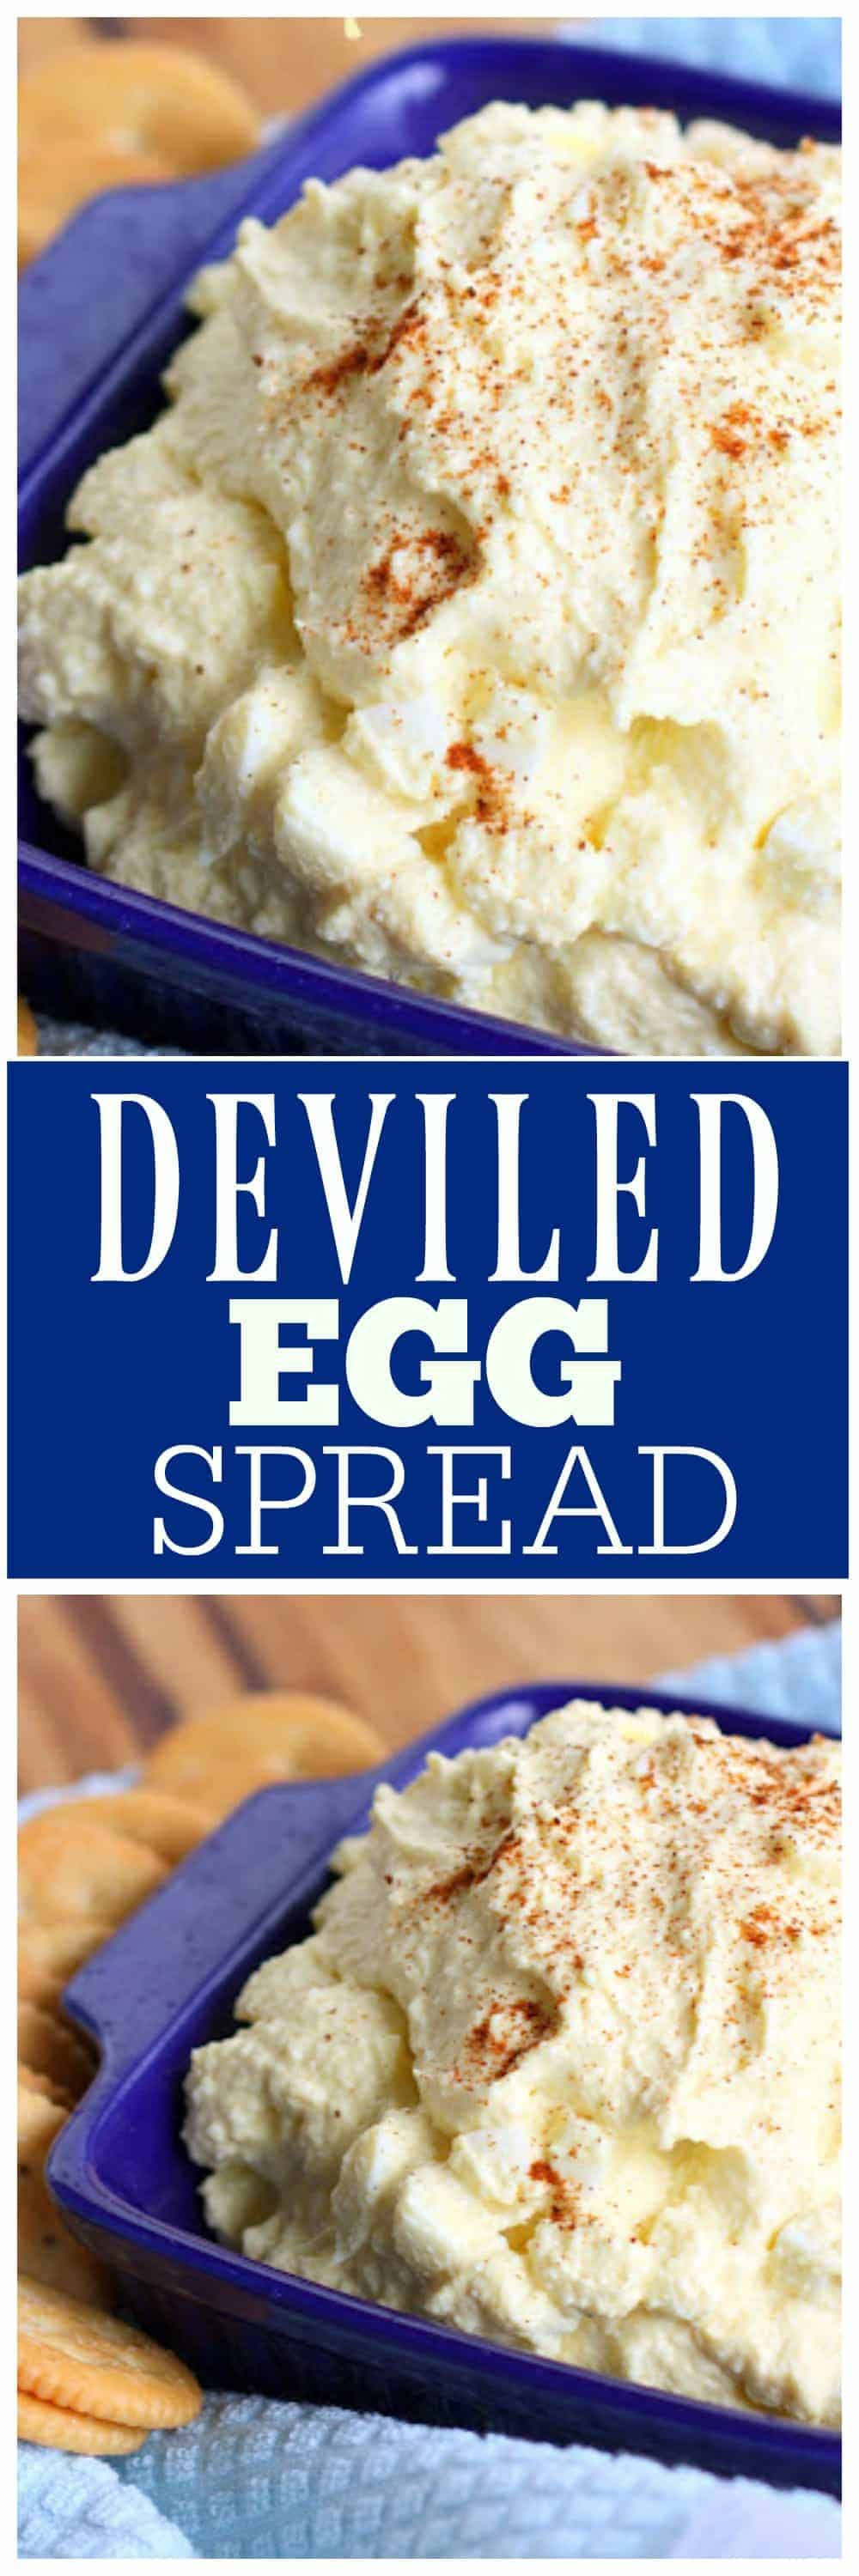 Deviled Egg Spread - I really could eat the whole bowl of this! #deviled #egg #spread #appetizer #recipe #easter